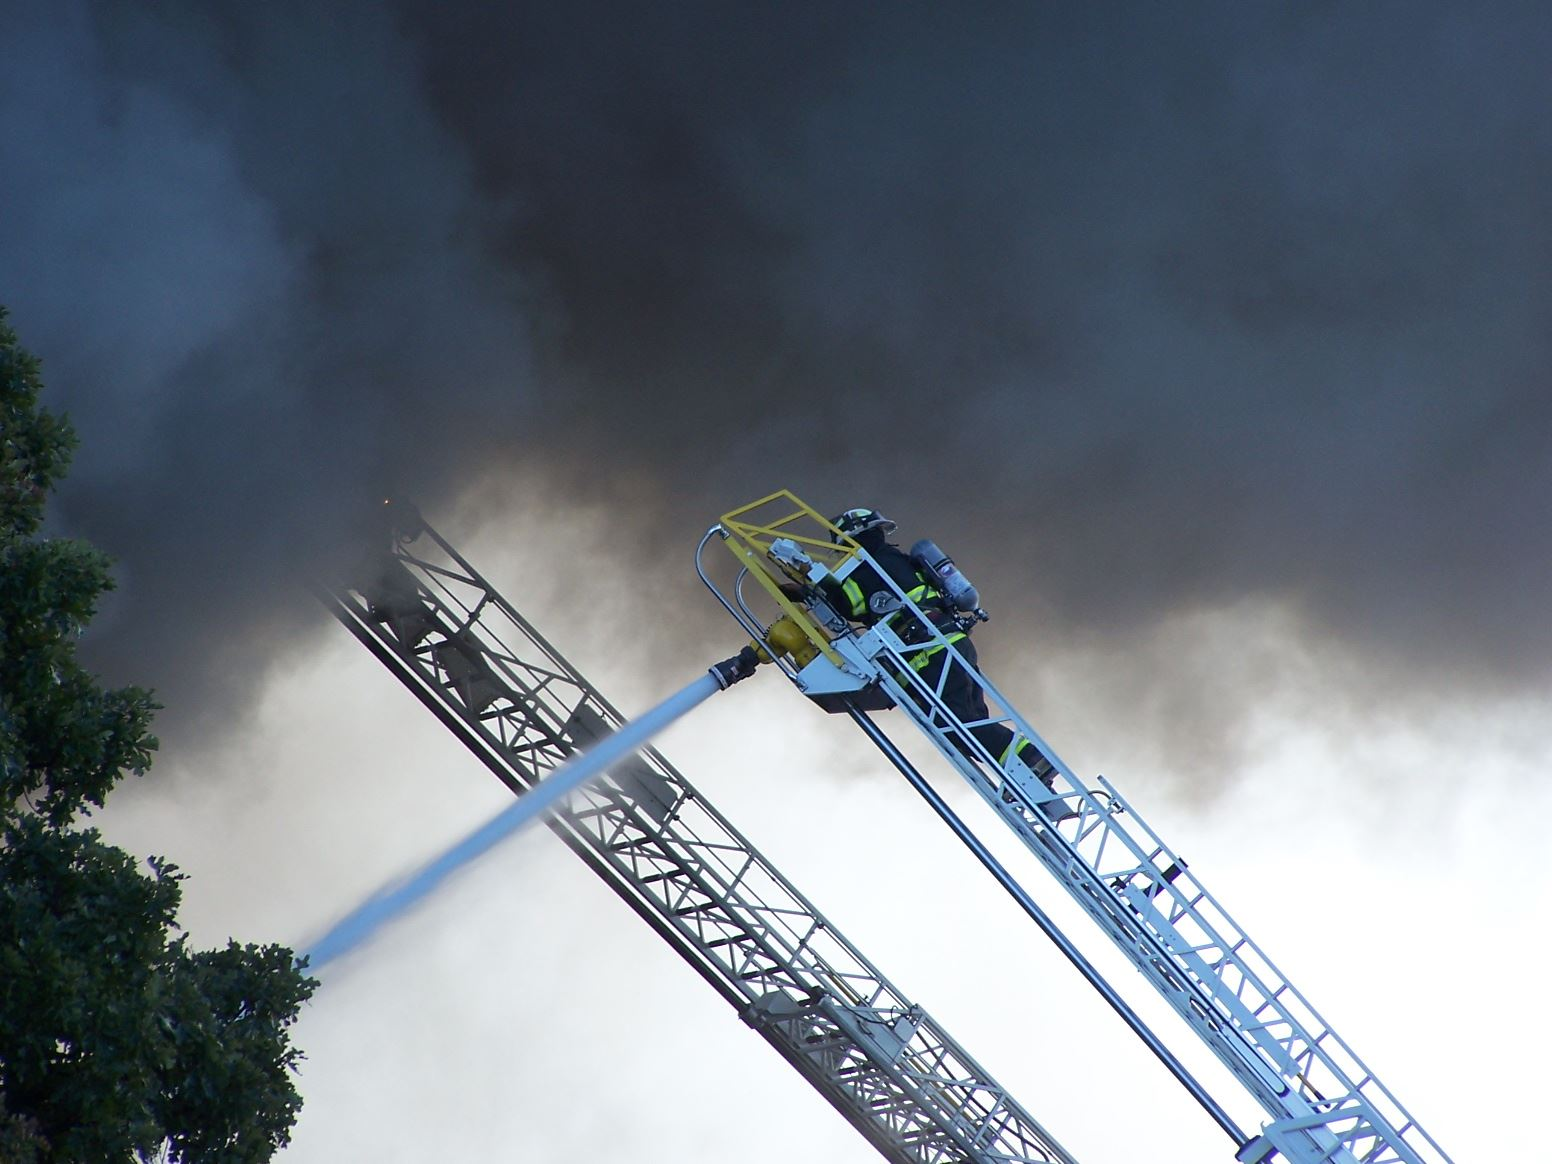 Fire fighter on a ladder spraying a fire